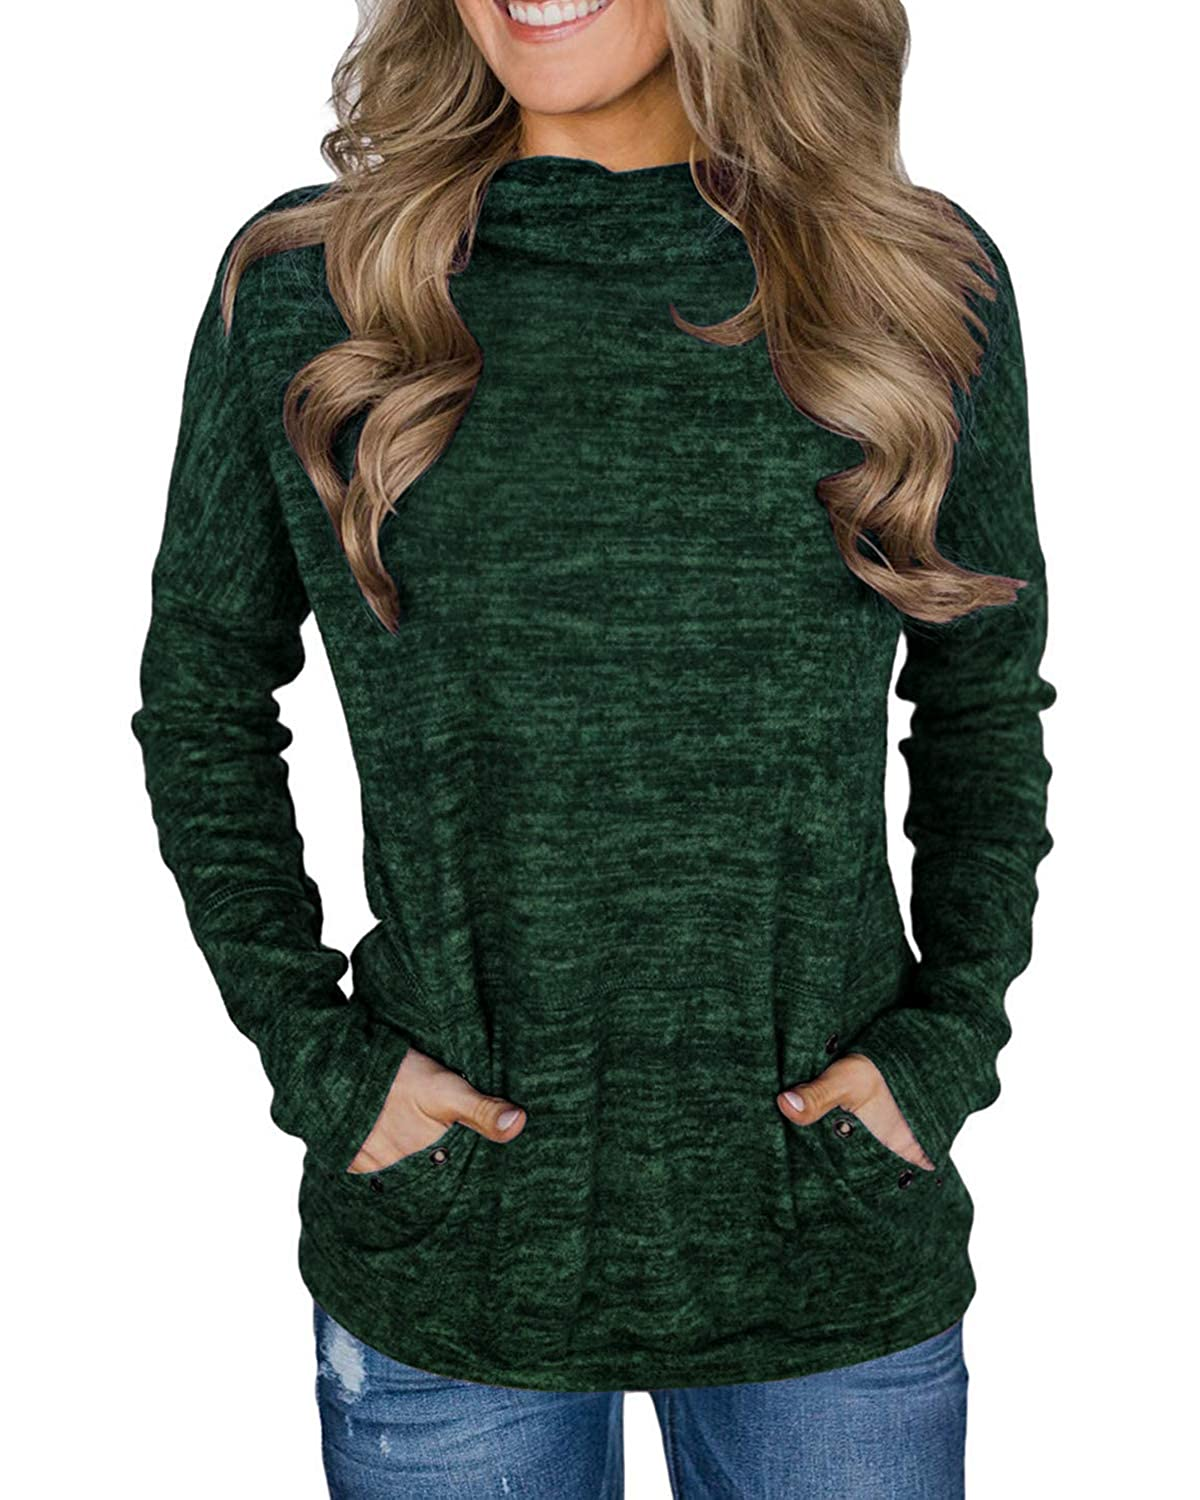 AELSON Women Casual Long Sleeve Fall /& Winter Tops Blouses Turtle Neck Cute Sweatshirt with Pocket